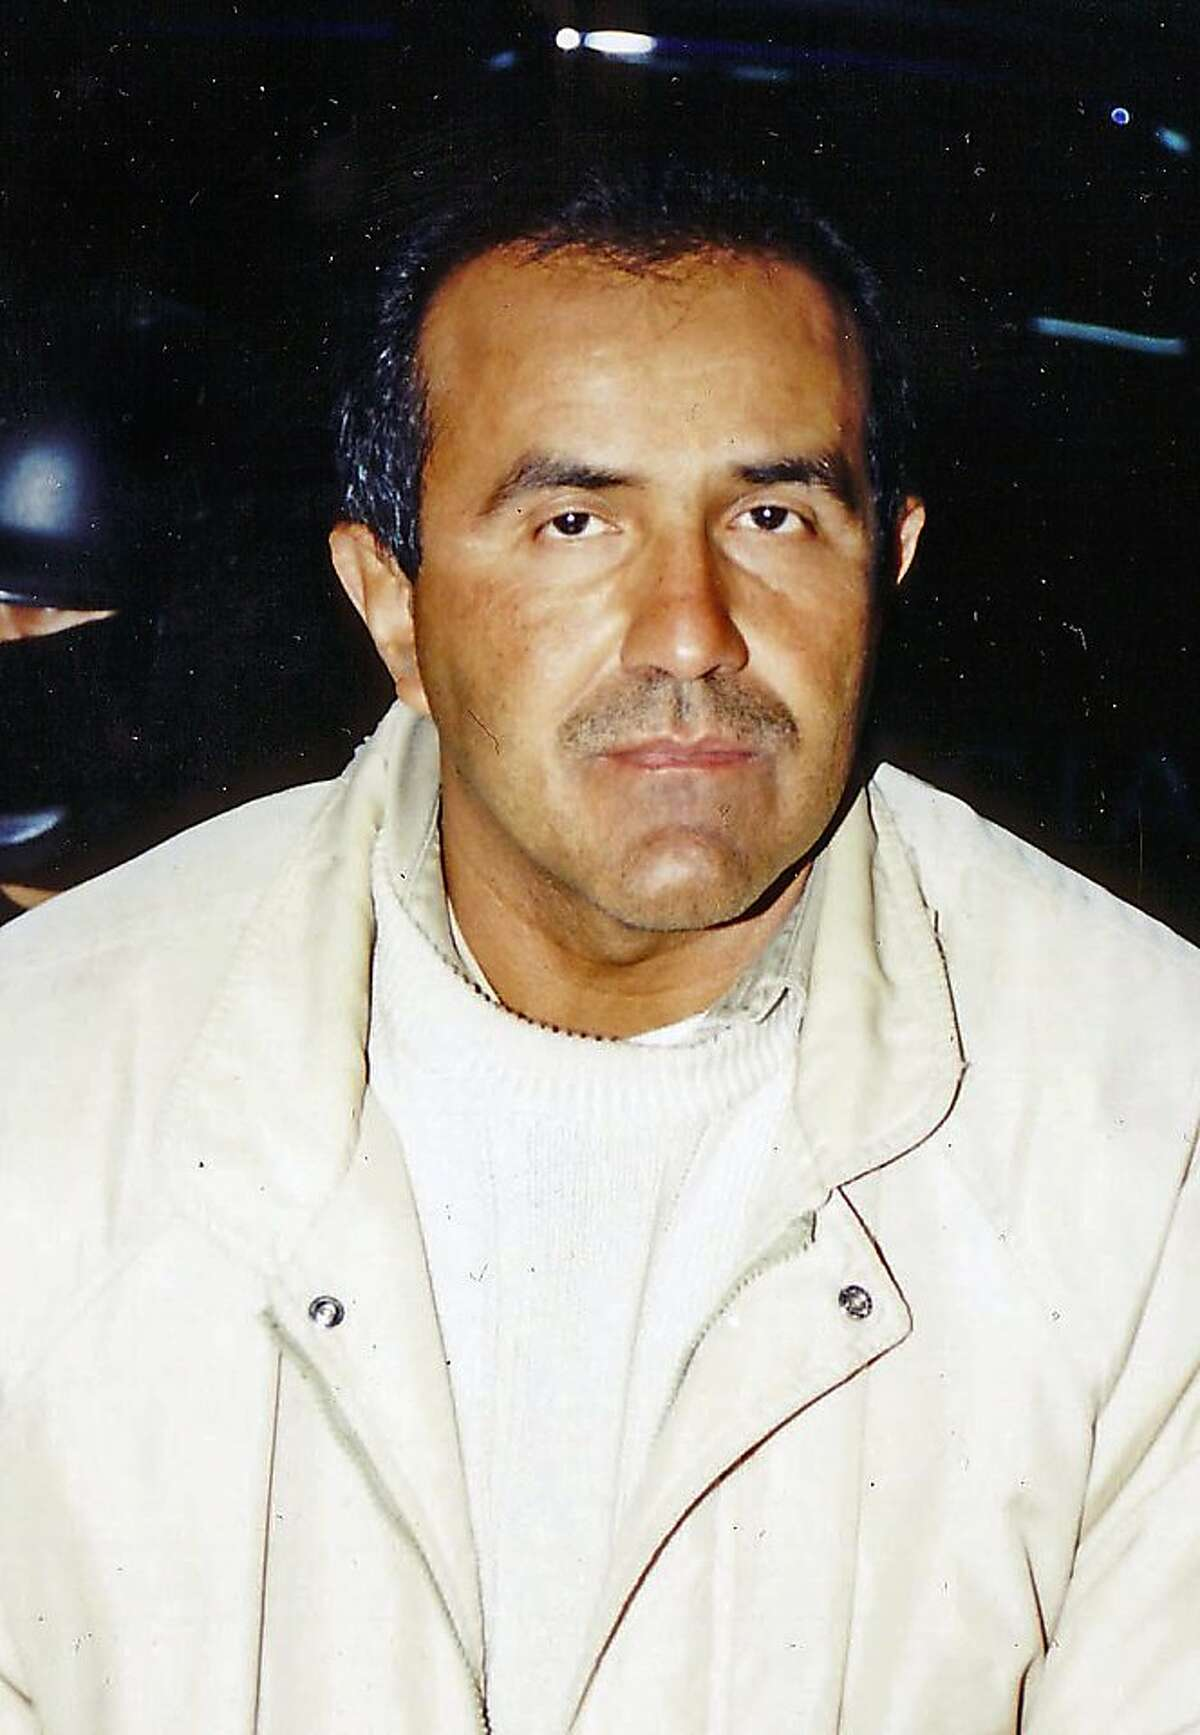 Miguel Angel Caro Quintero: Release date: October 12, 2019 About: Quintero was amember of the now dissolved Guadalajara Cartel. In 2010, Quintero was sentenced to 17 years in prison for trafficking marijuana and participating in organized crime according to CNN.